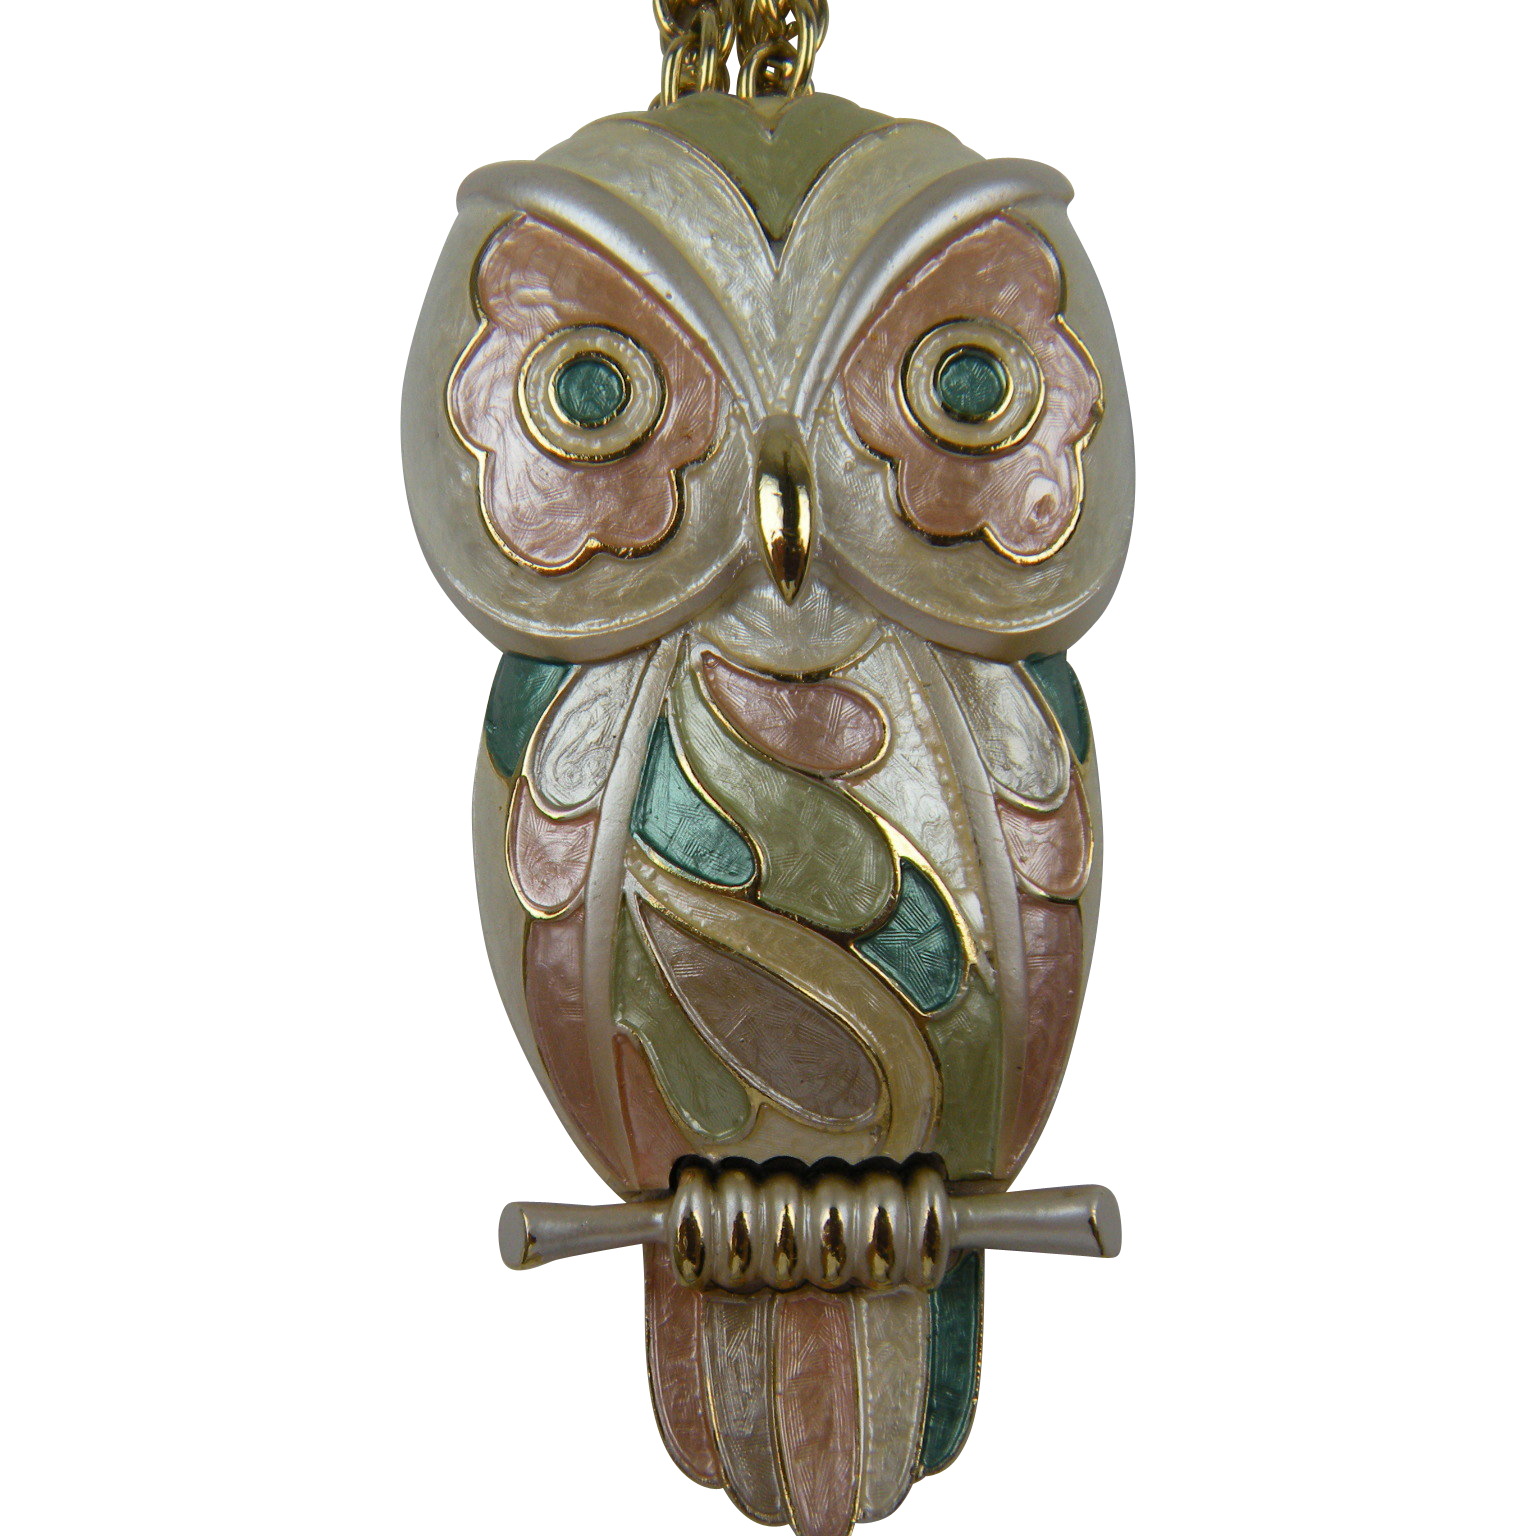 SALE Huge Enameled Owl Pendant Necklace